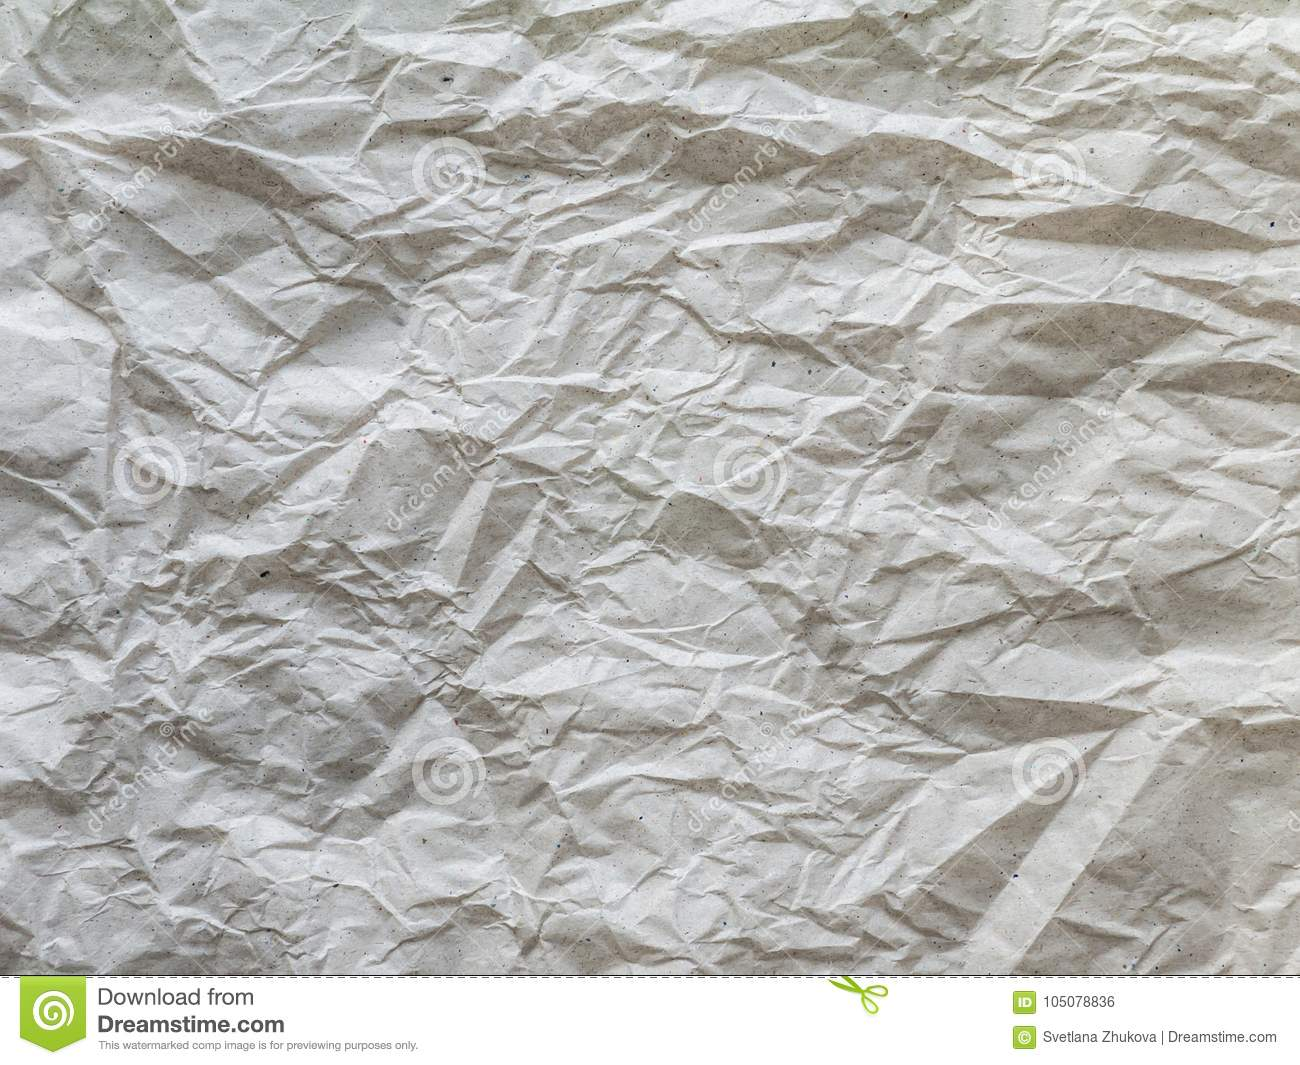 Crumpled recycled gray packing paper